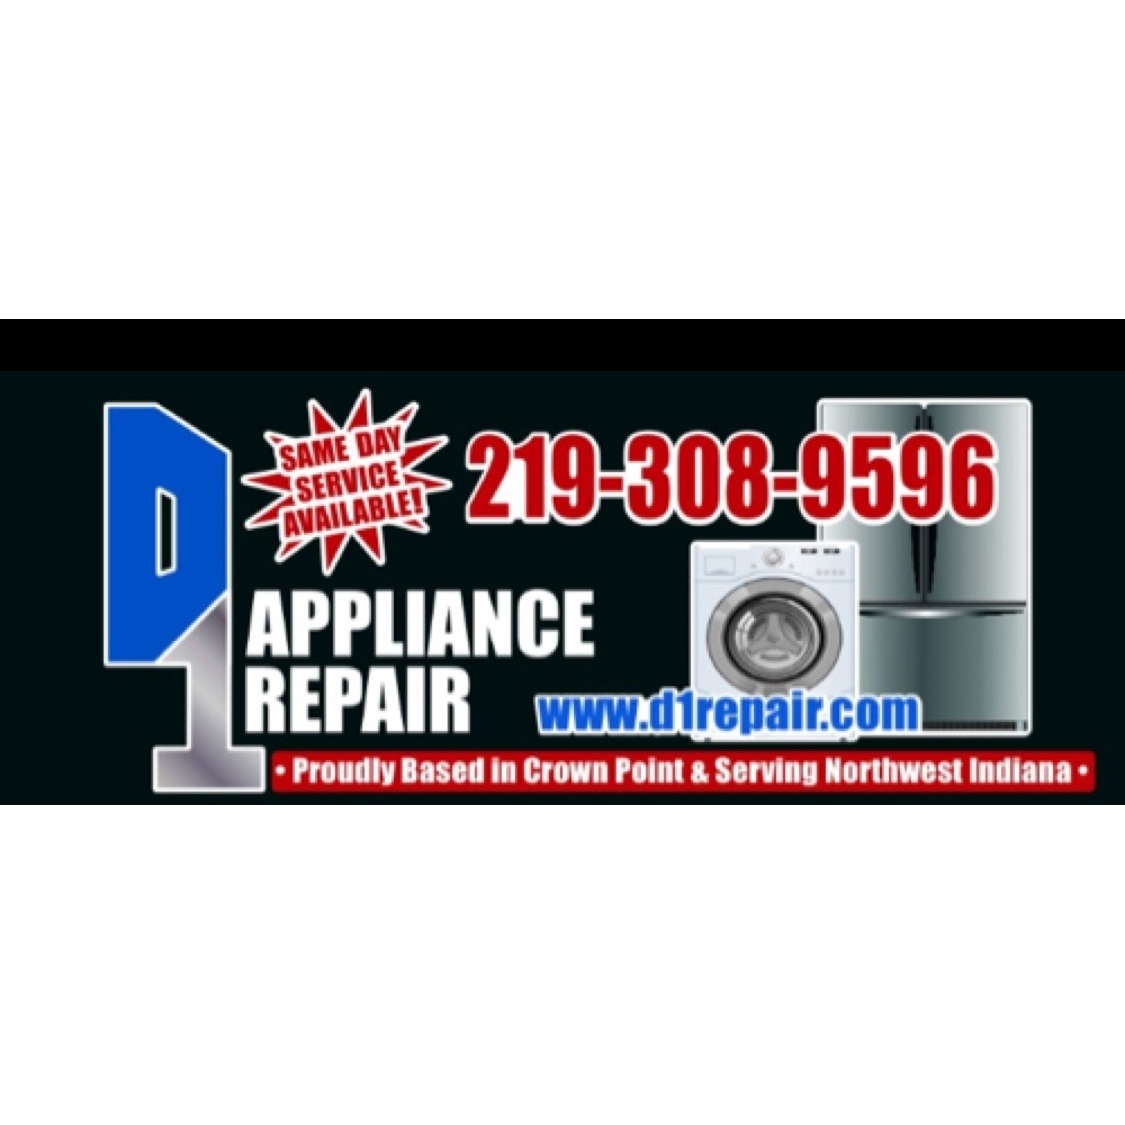 D-1 Appliance Repair